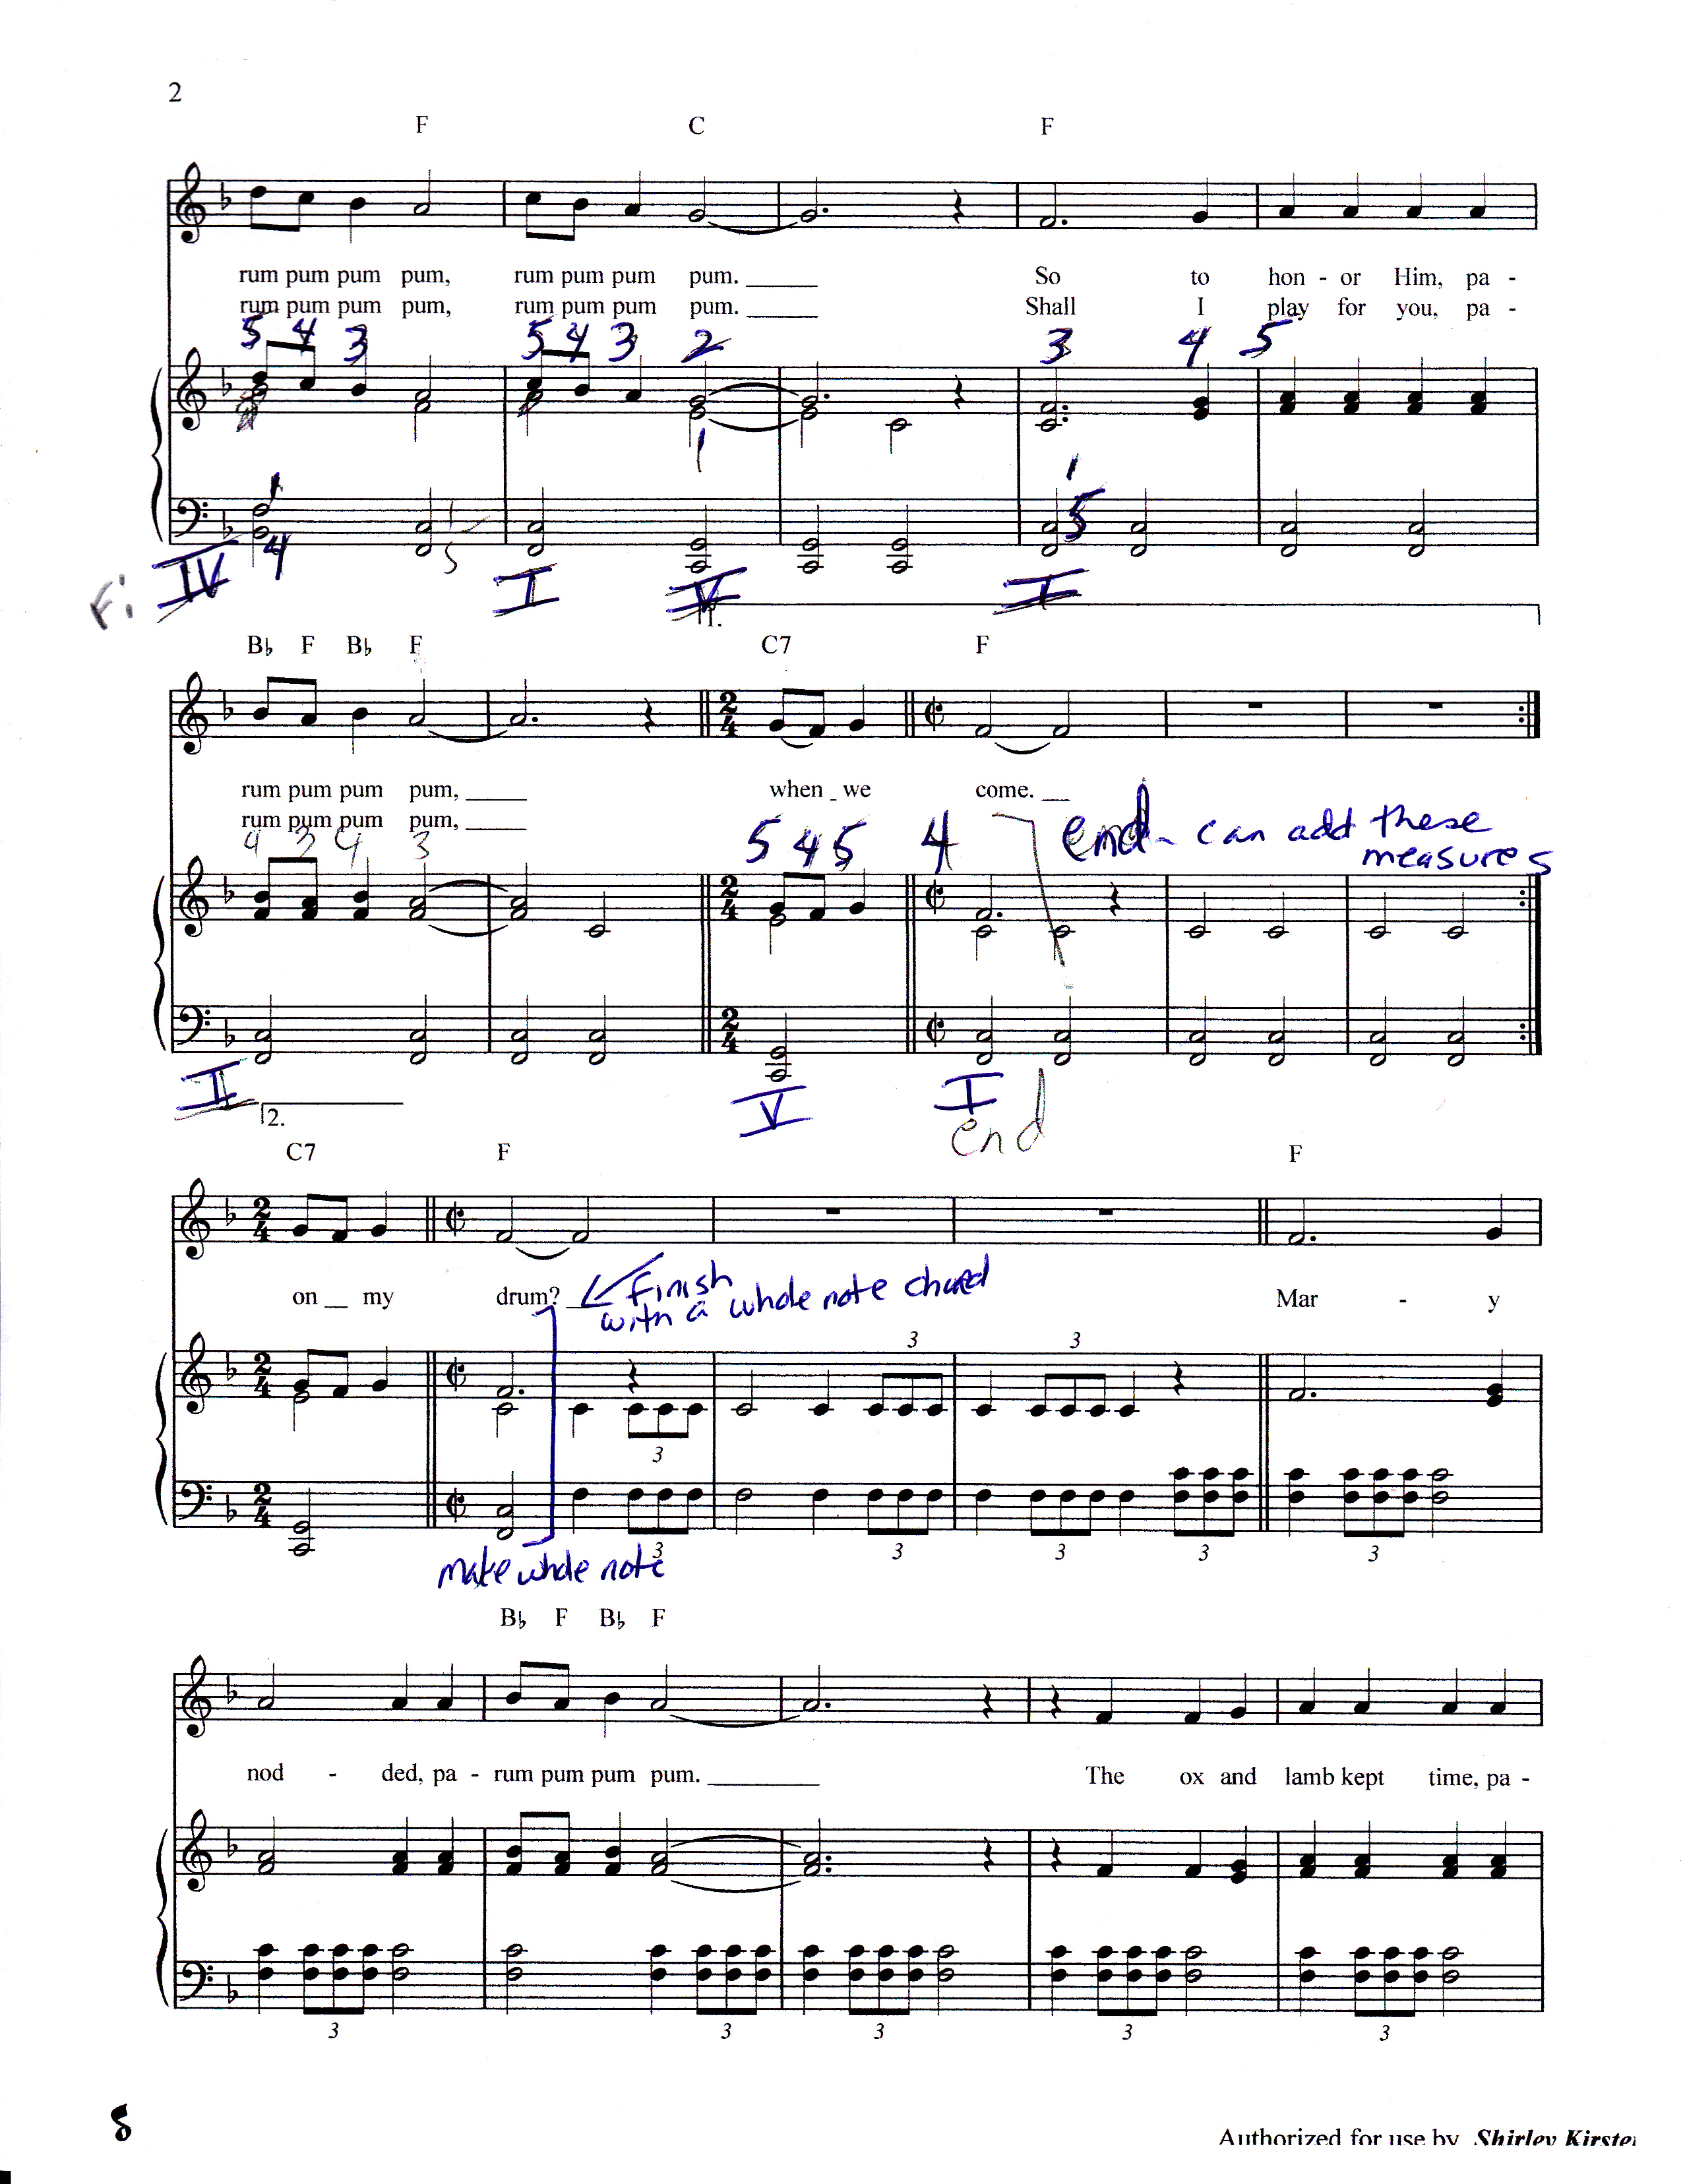 Piano Lessons: Theory and Christmas Music interwoven (Videos ...